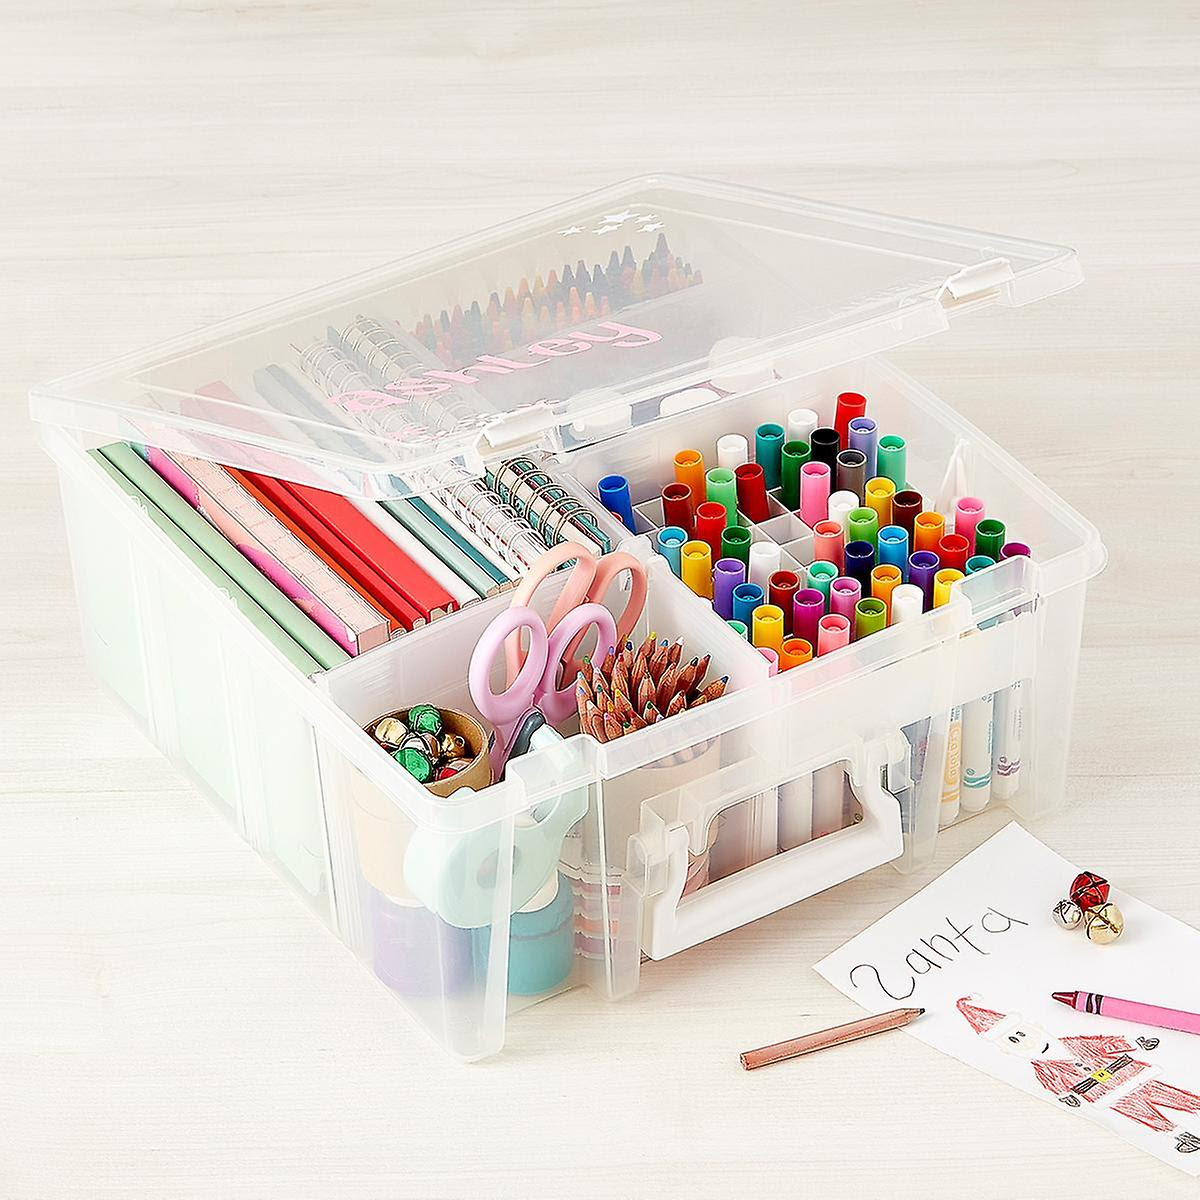 The Art Bin from The Container Store